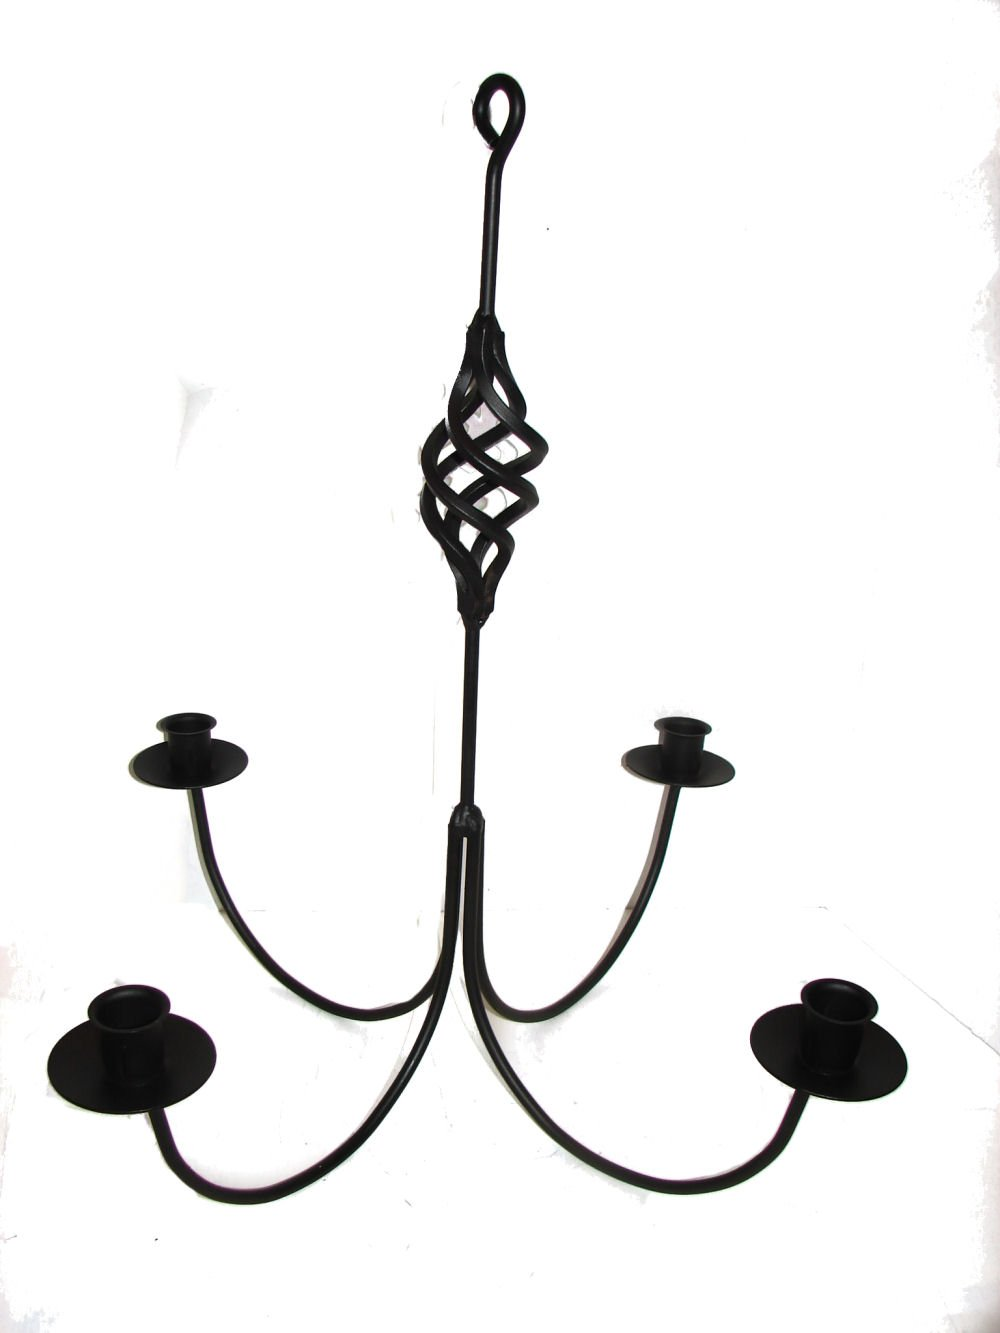 Wrought Iron 4 Arm Candle Chandelier w/ Birdcage Center